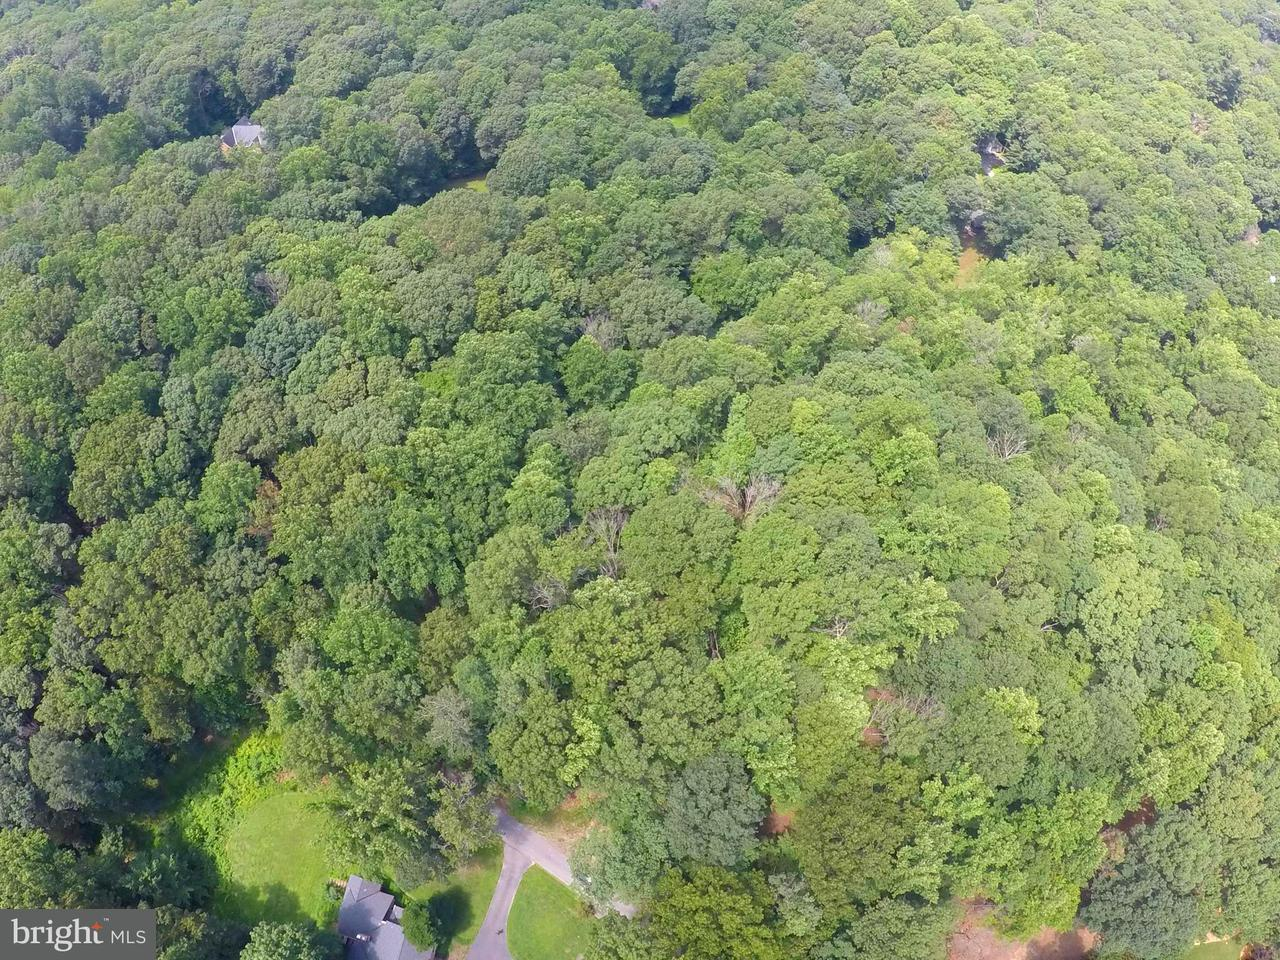 Land for Sale at 615 UTTERBACK STORE Road 615 UTTERBACK STORE Road Great Falls, Virginia 22066 United States